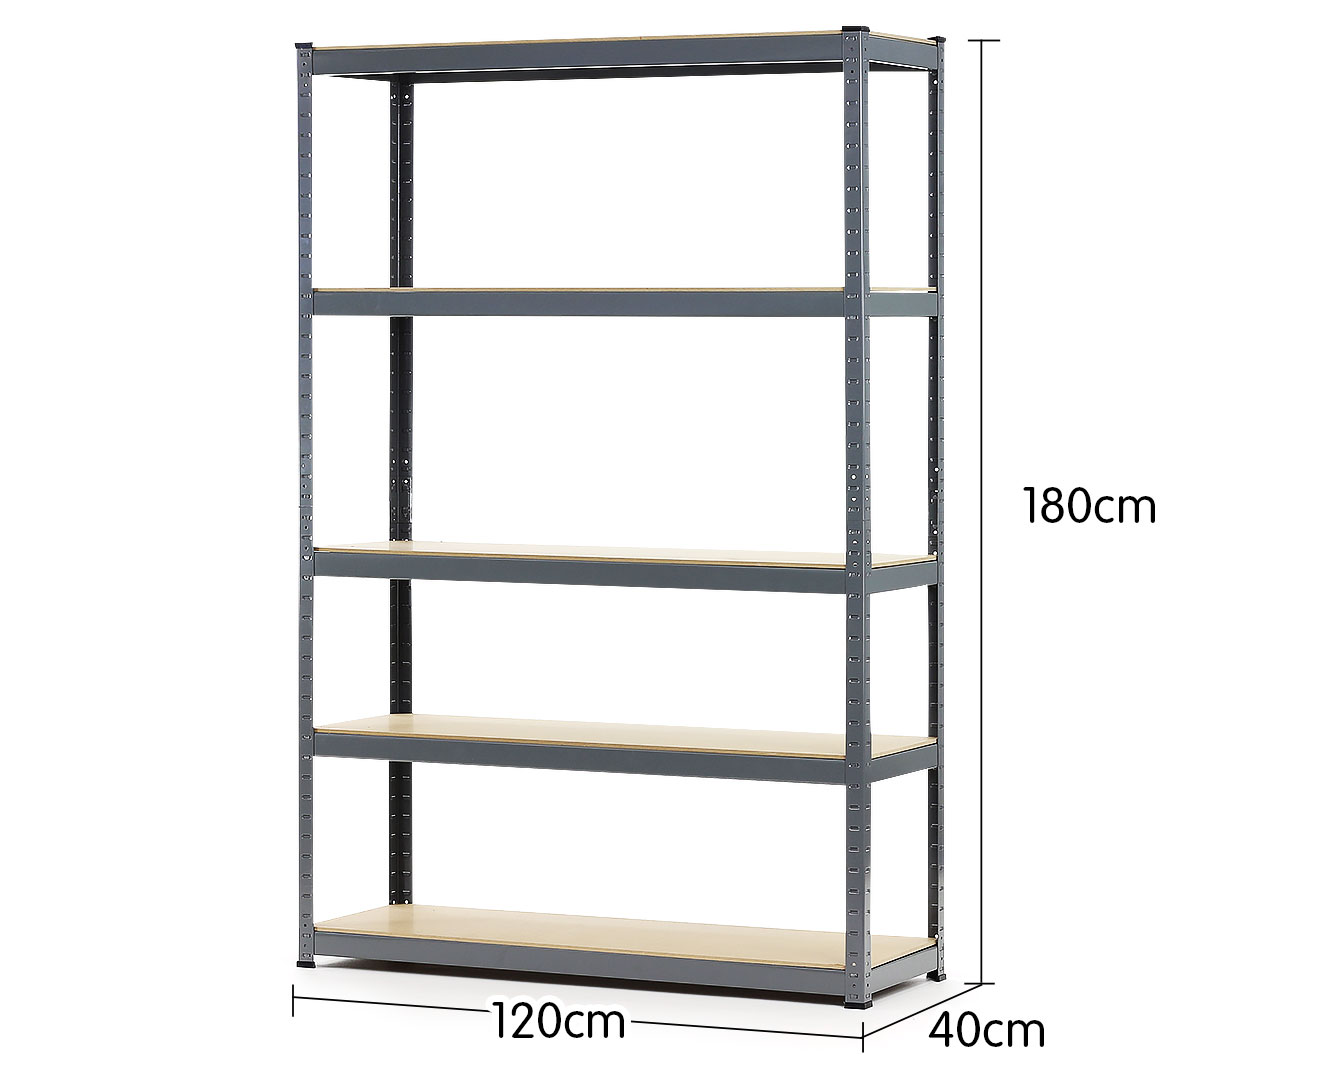 Heavy Duty 5 Shelf Storage Unit - 180 x 120 x 40cm - $212.7